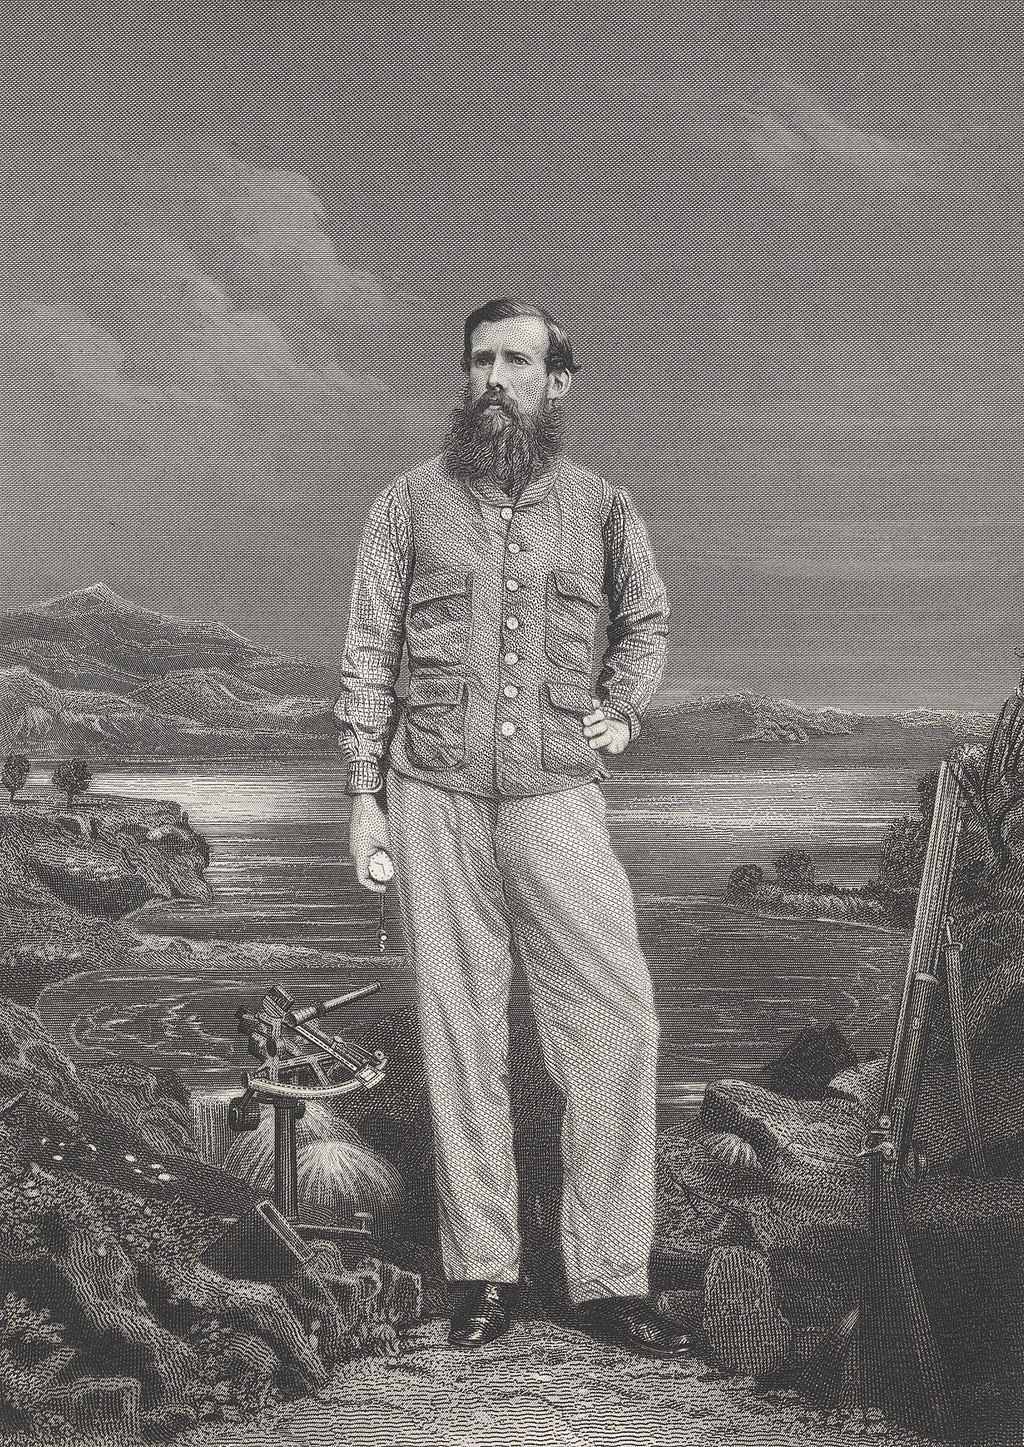 A portrait of John Hanning Speke, the man who played such a key role in the discovery of the source of the River Nile.